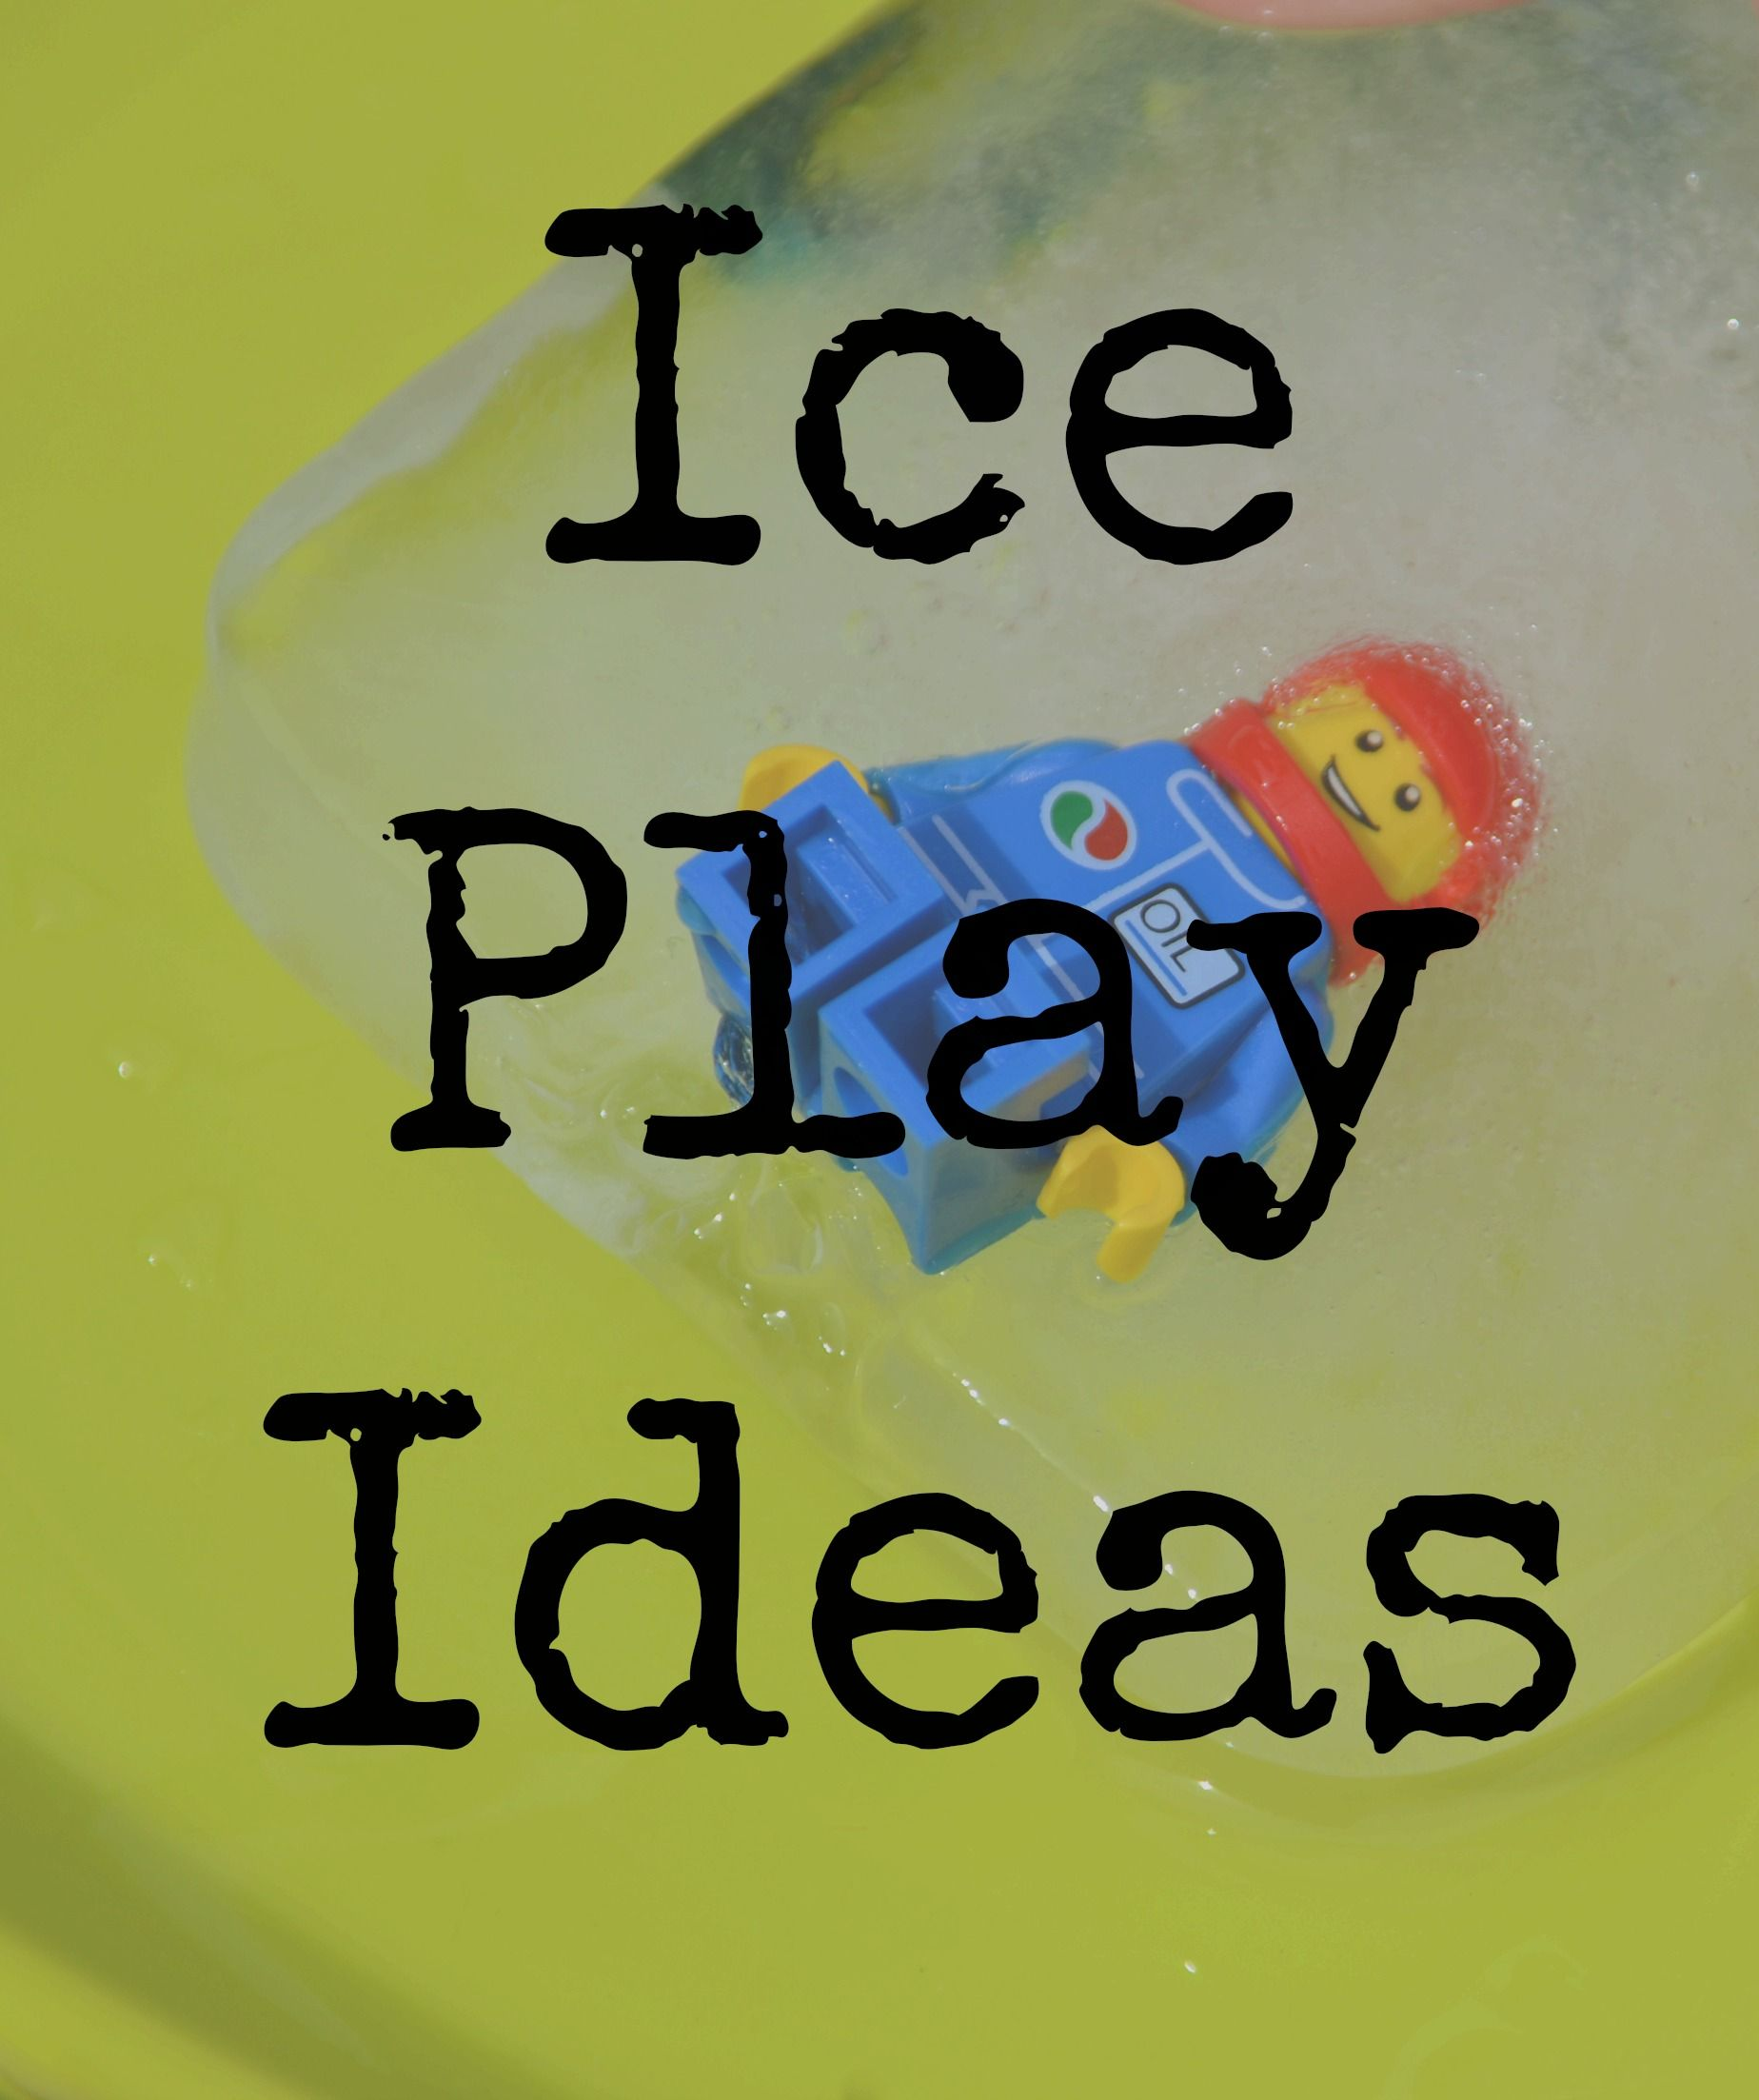 Winter Science Experiments | Play ideas, Plays and Winter